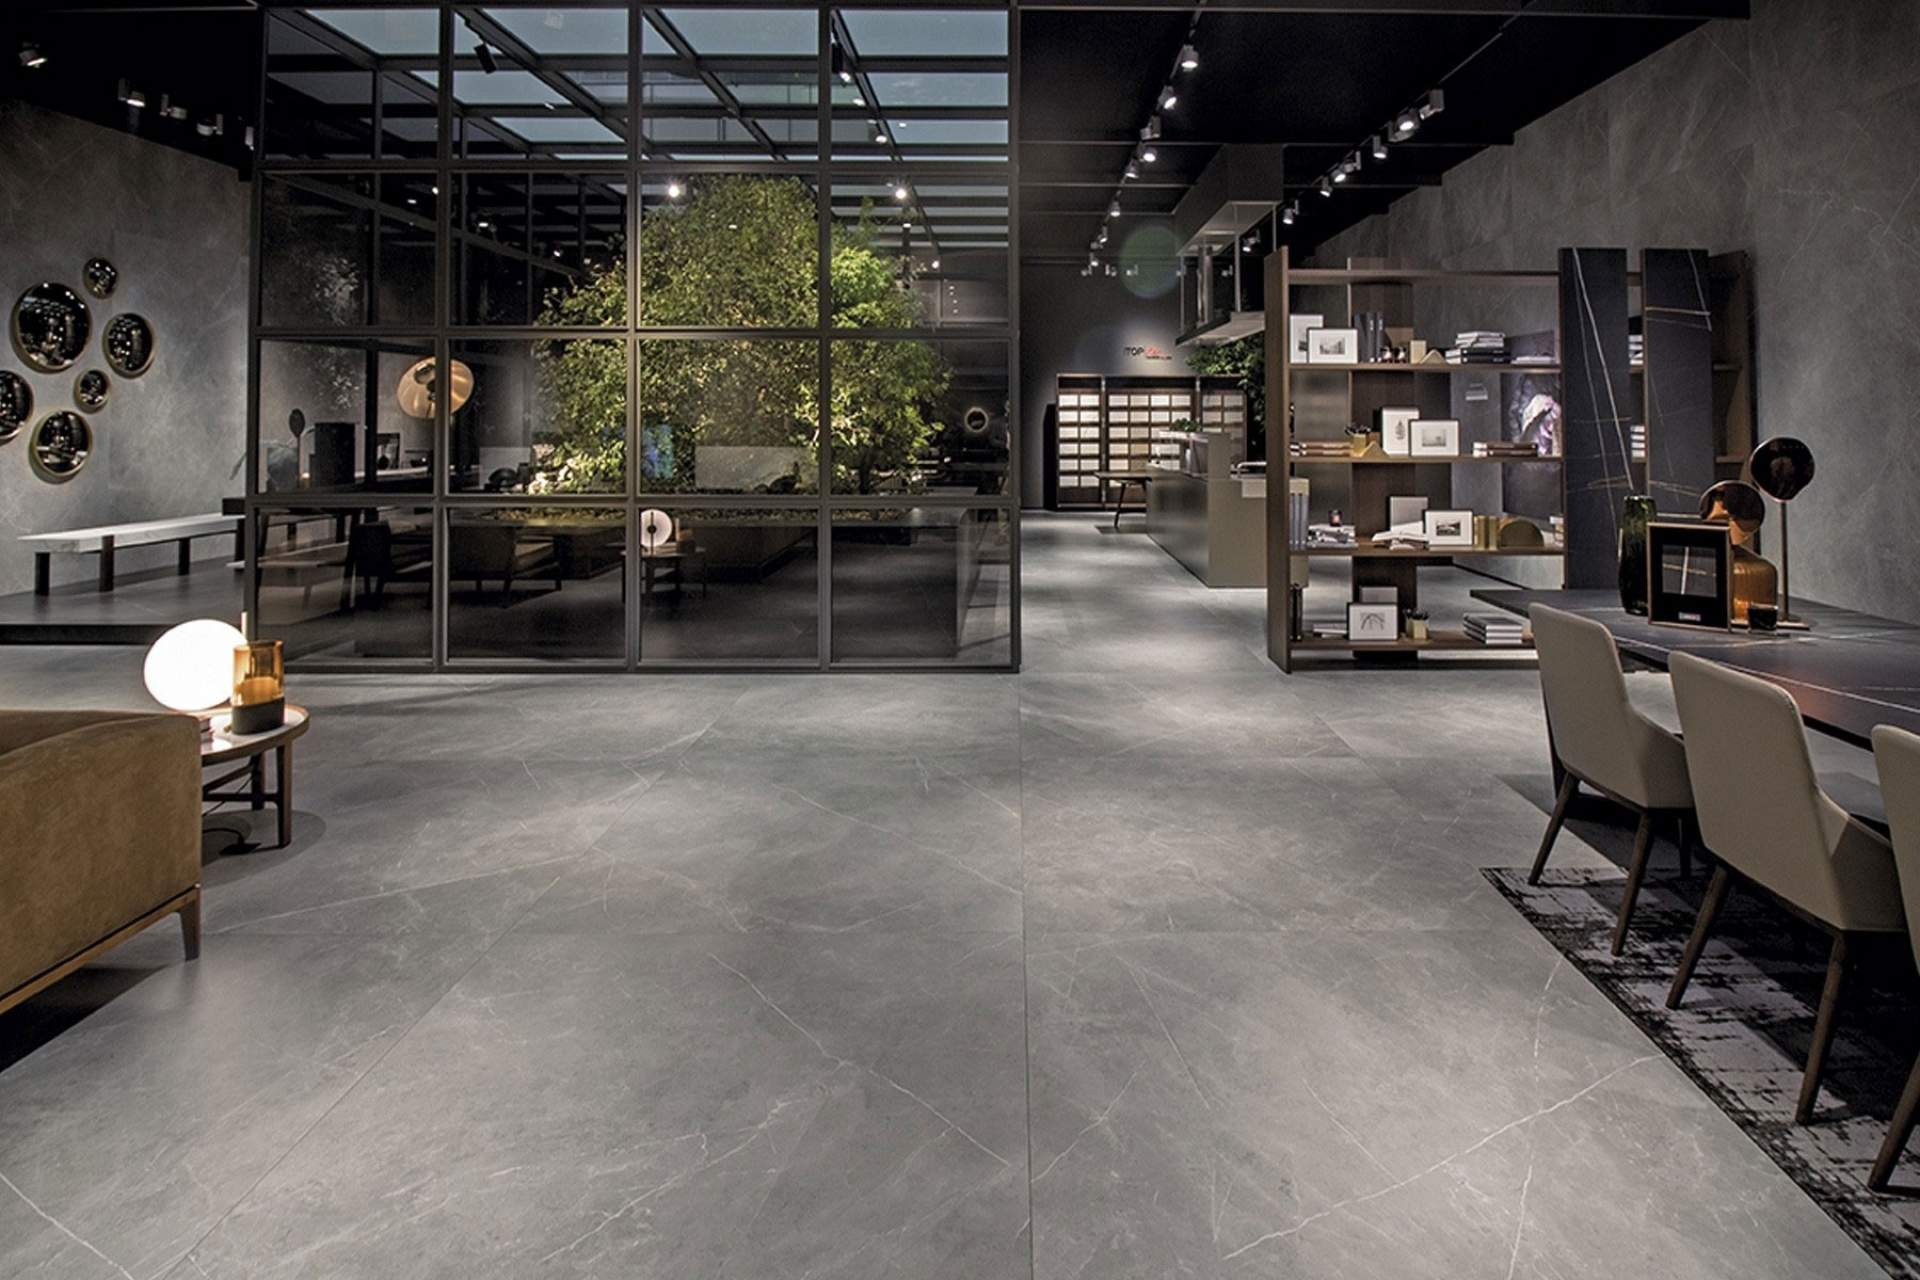 Inspire shop setting using grey natural tile